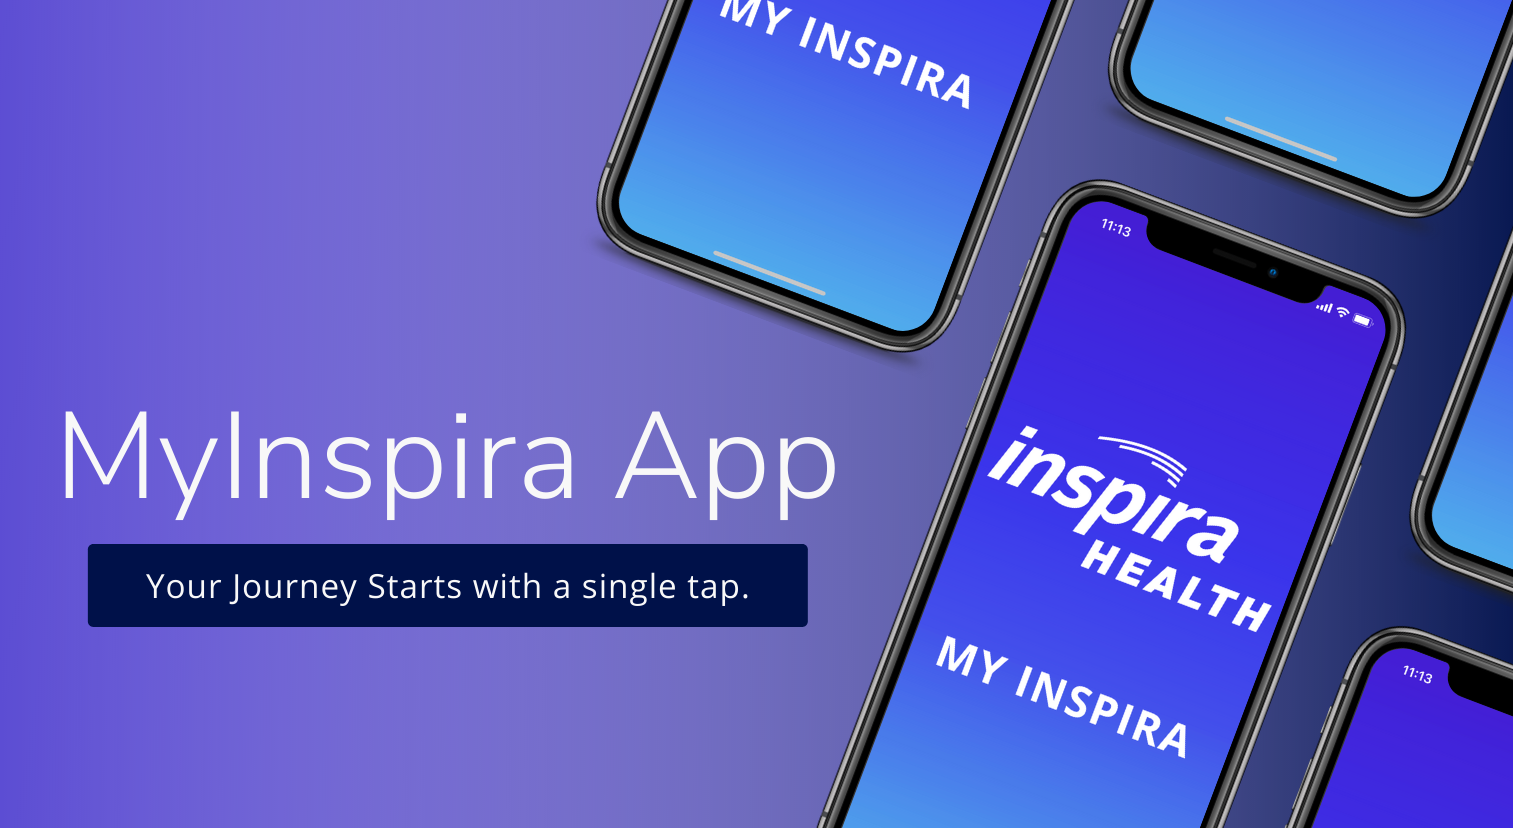 My Inspira App Your Journey Starts with a Single Tap